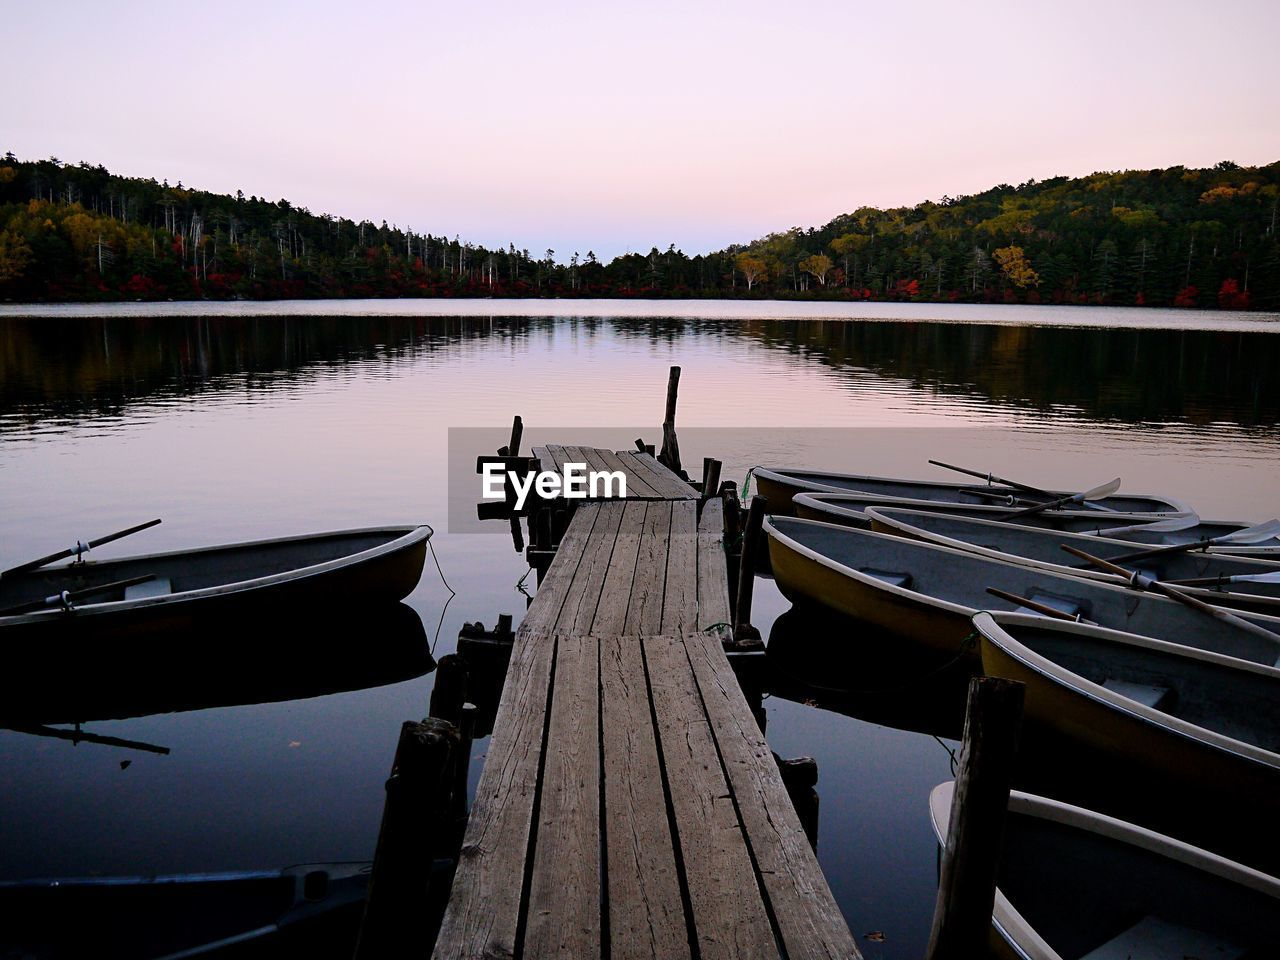 VIEW OF JETTY IN LAKE